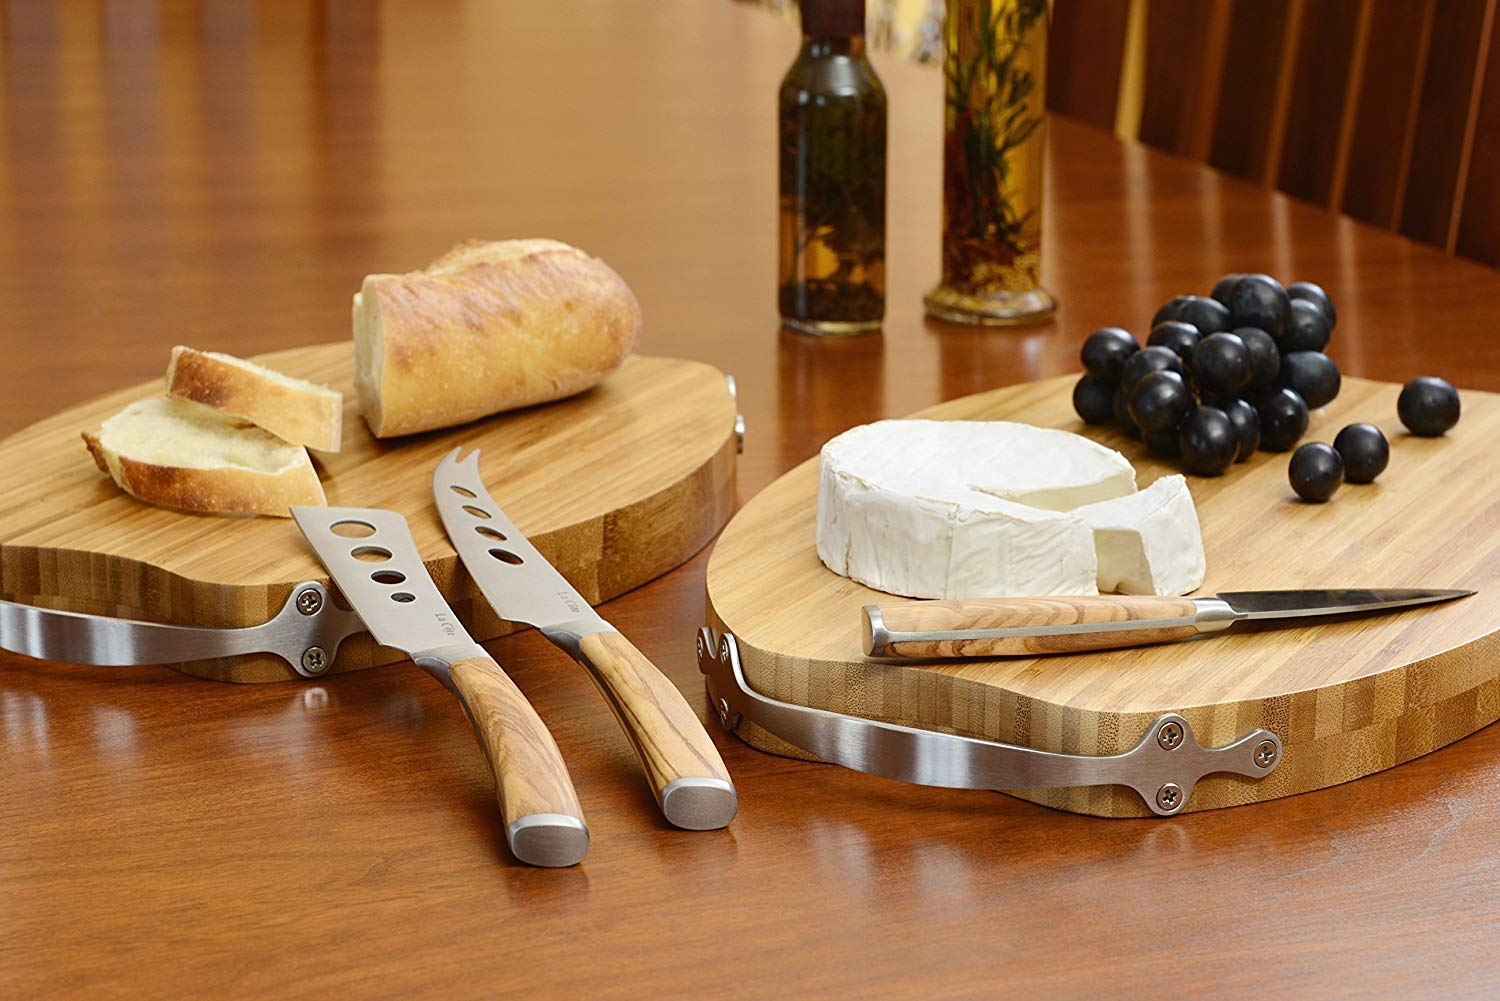 La Cote Olive Wood Cheese Knives Set Servers Accessories (3 Piece Cheese Knife Set In Bamboo box) by La Cote Homeware (Image #5)